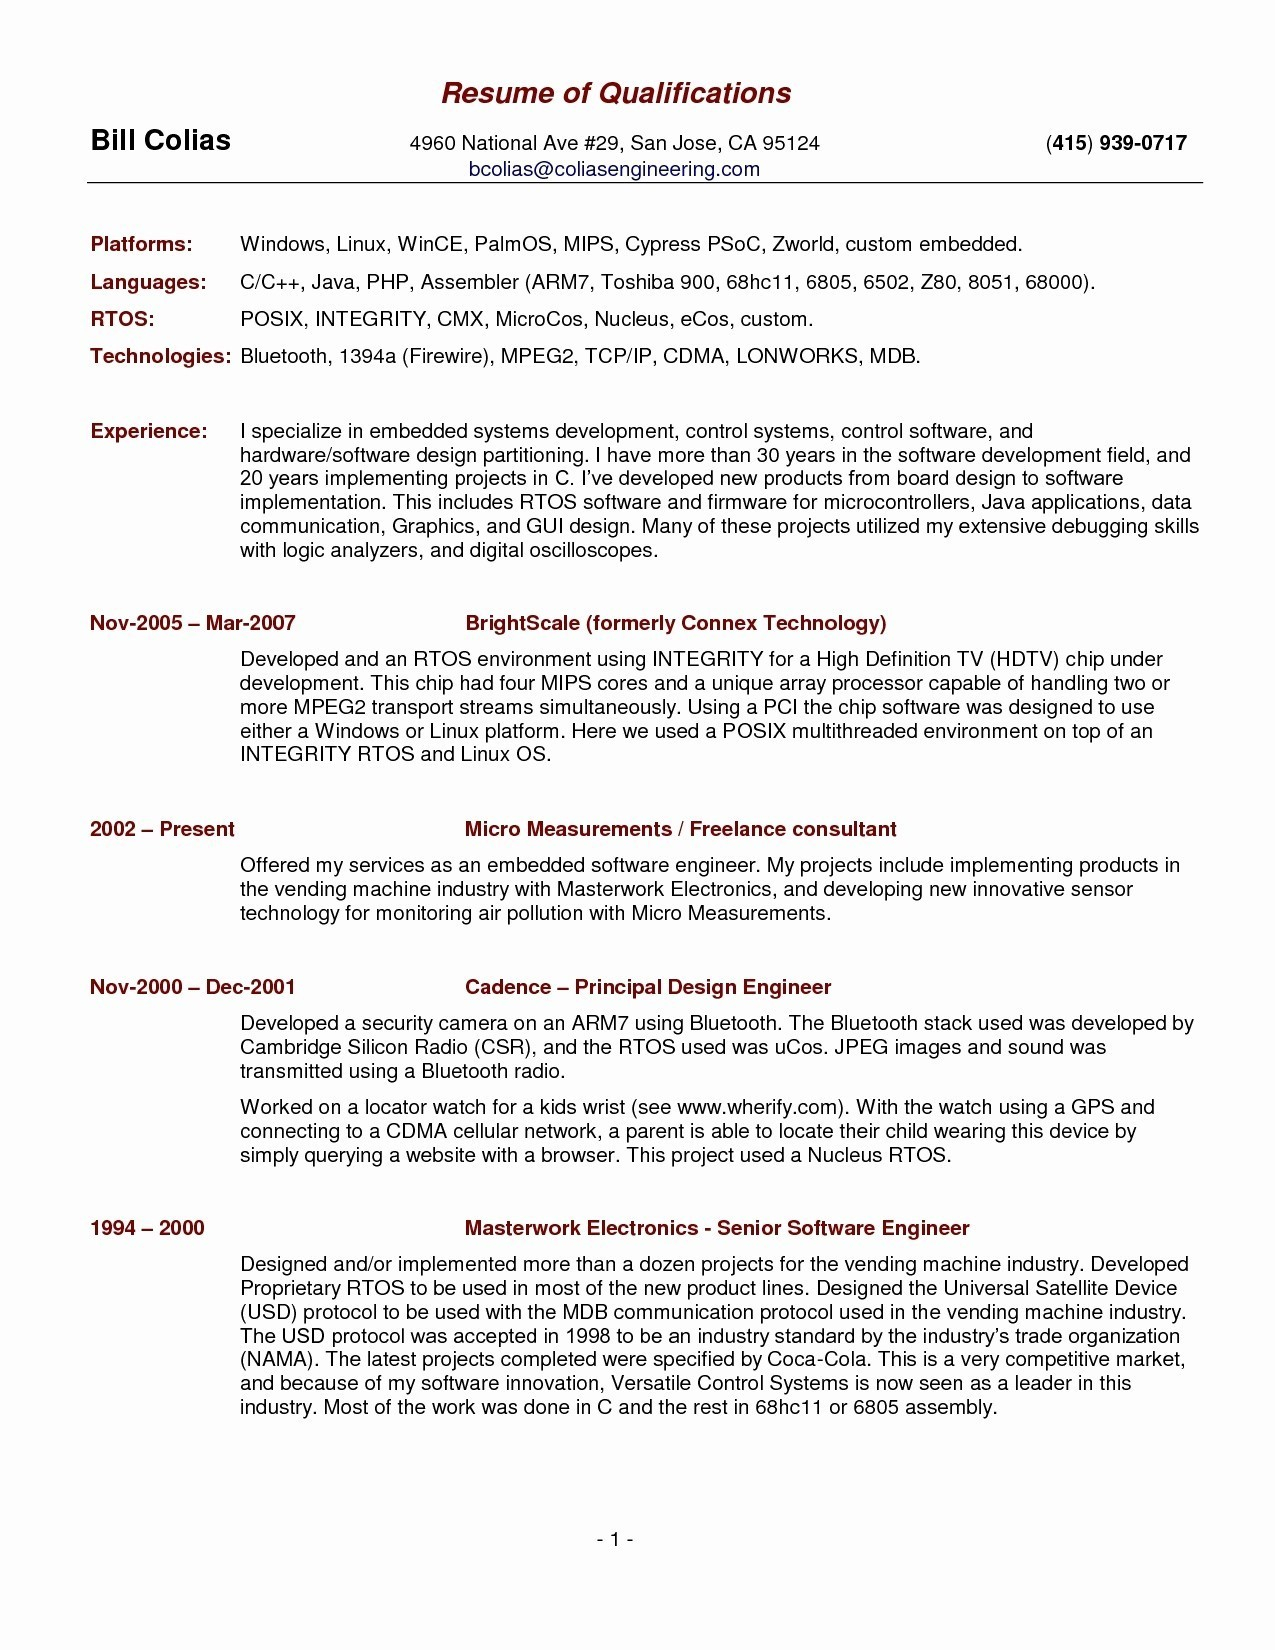 Opening Statement for Resume - Speech Language Pathologist Resume Elegant Unique Examples Resumes